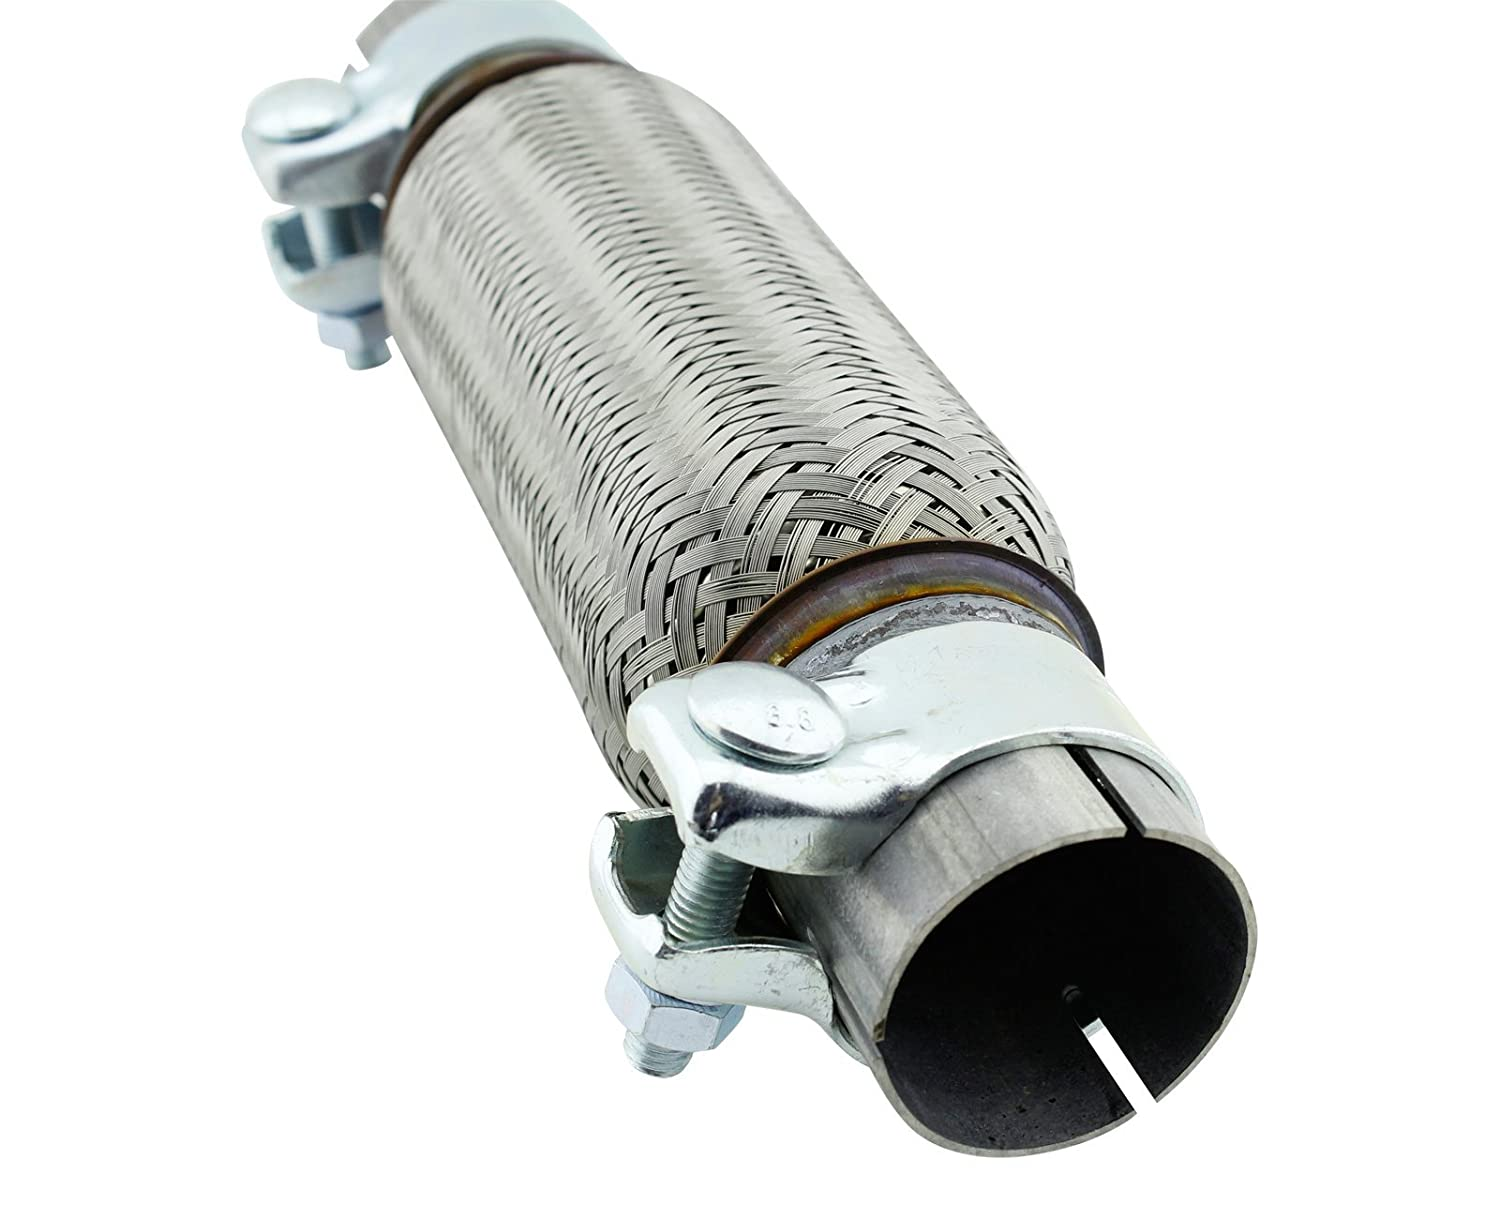 50/ x 200/ mm Universal Stainless Steel Flexible Hose Complete with fixing clamps